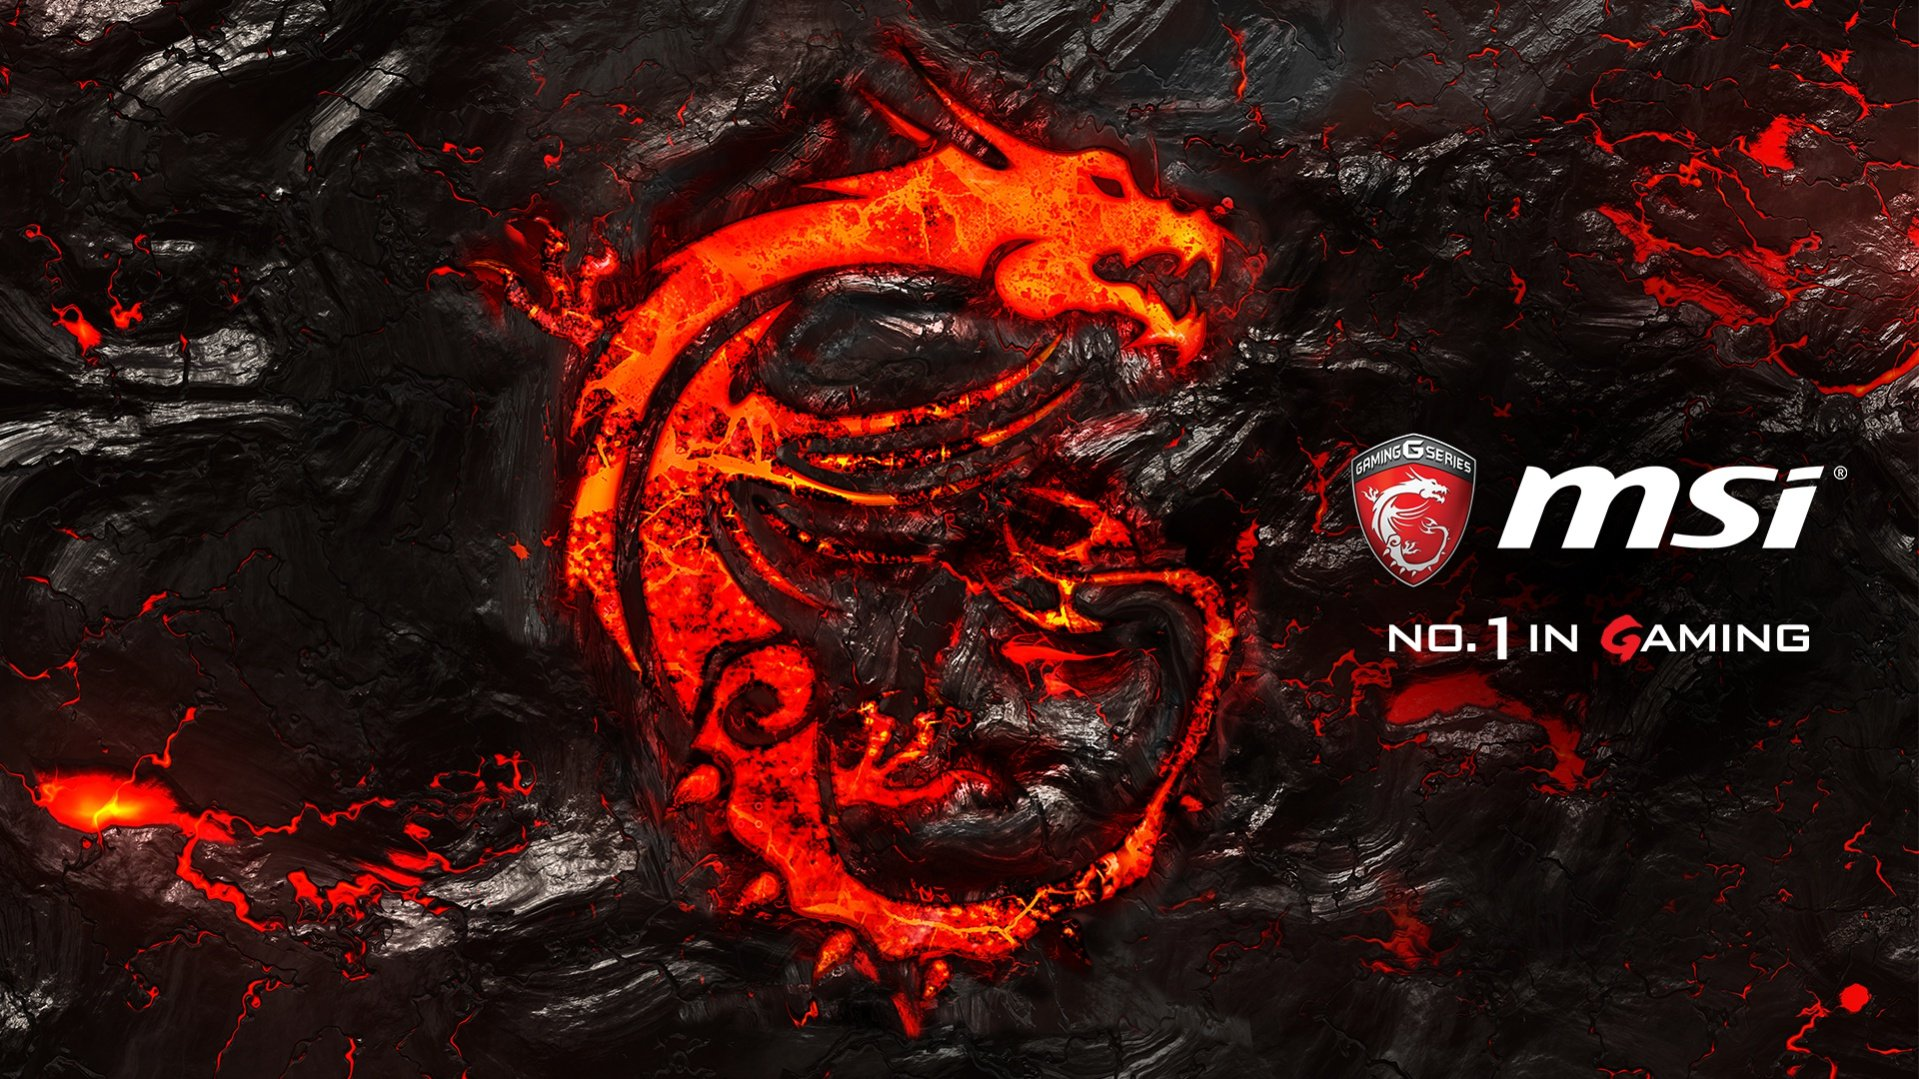 10 New Msi Gaming Series Wallpaper Full Hd 1920 1080 For: MSI Gaming Wallpaper 1920x1080